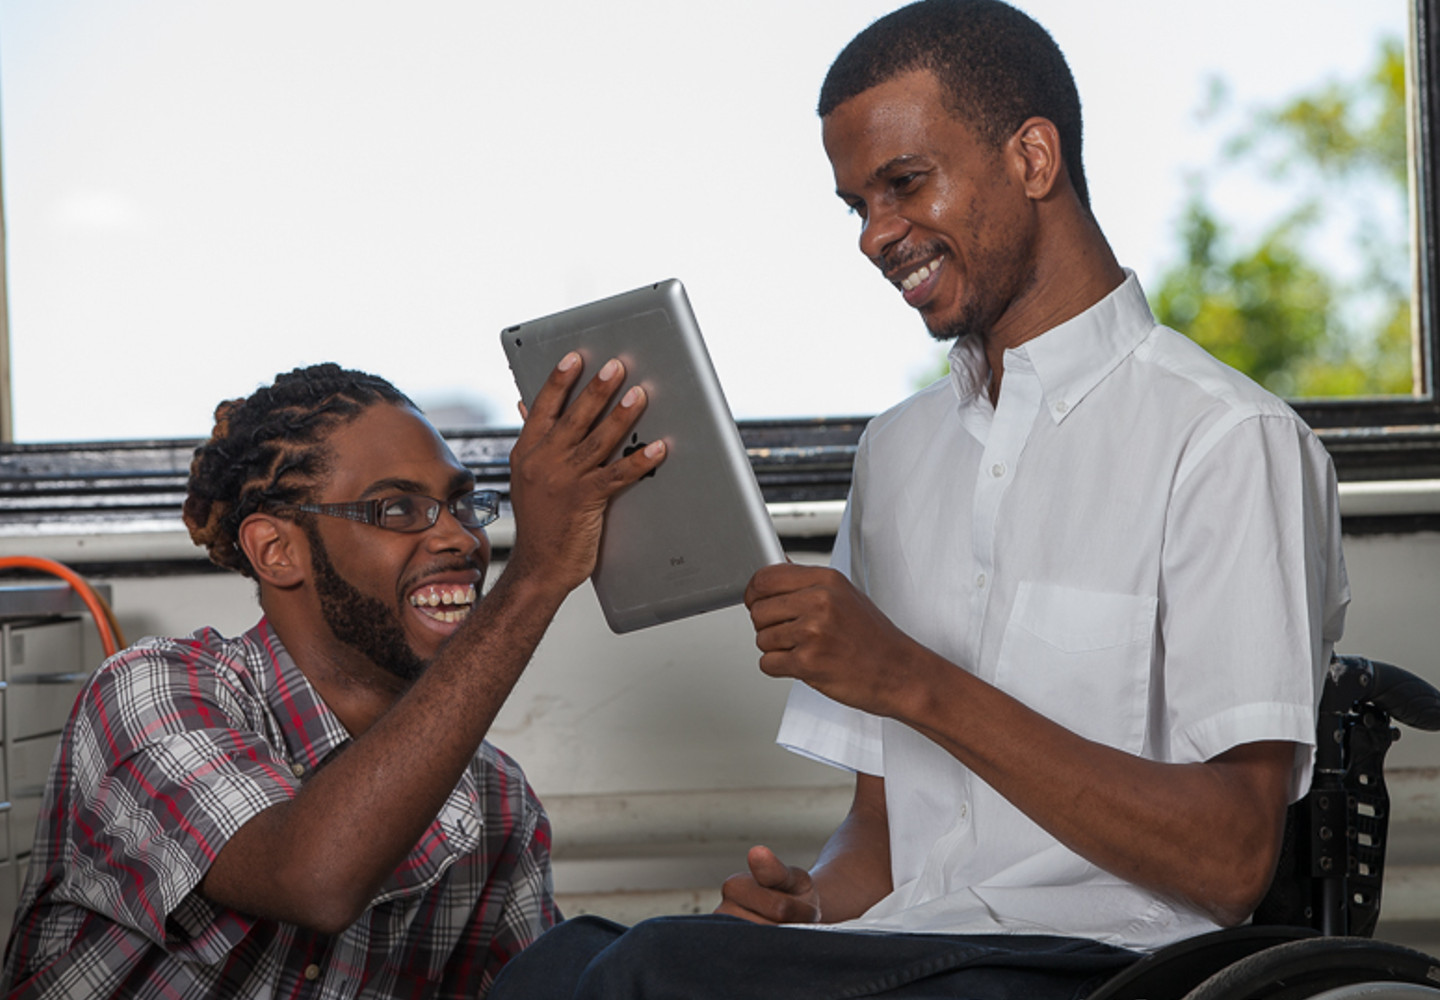 Young black man holds an iPad up for another young black man in a wheelchair